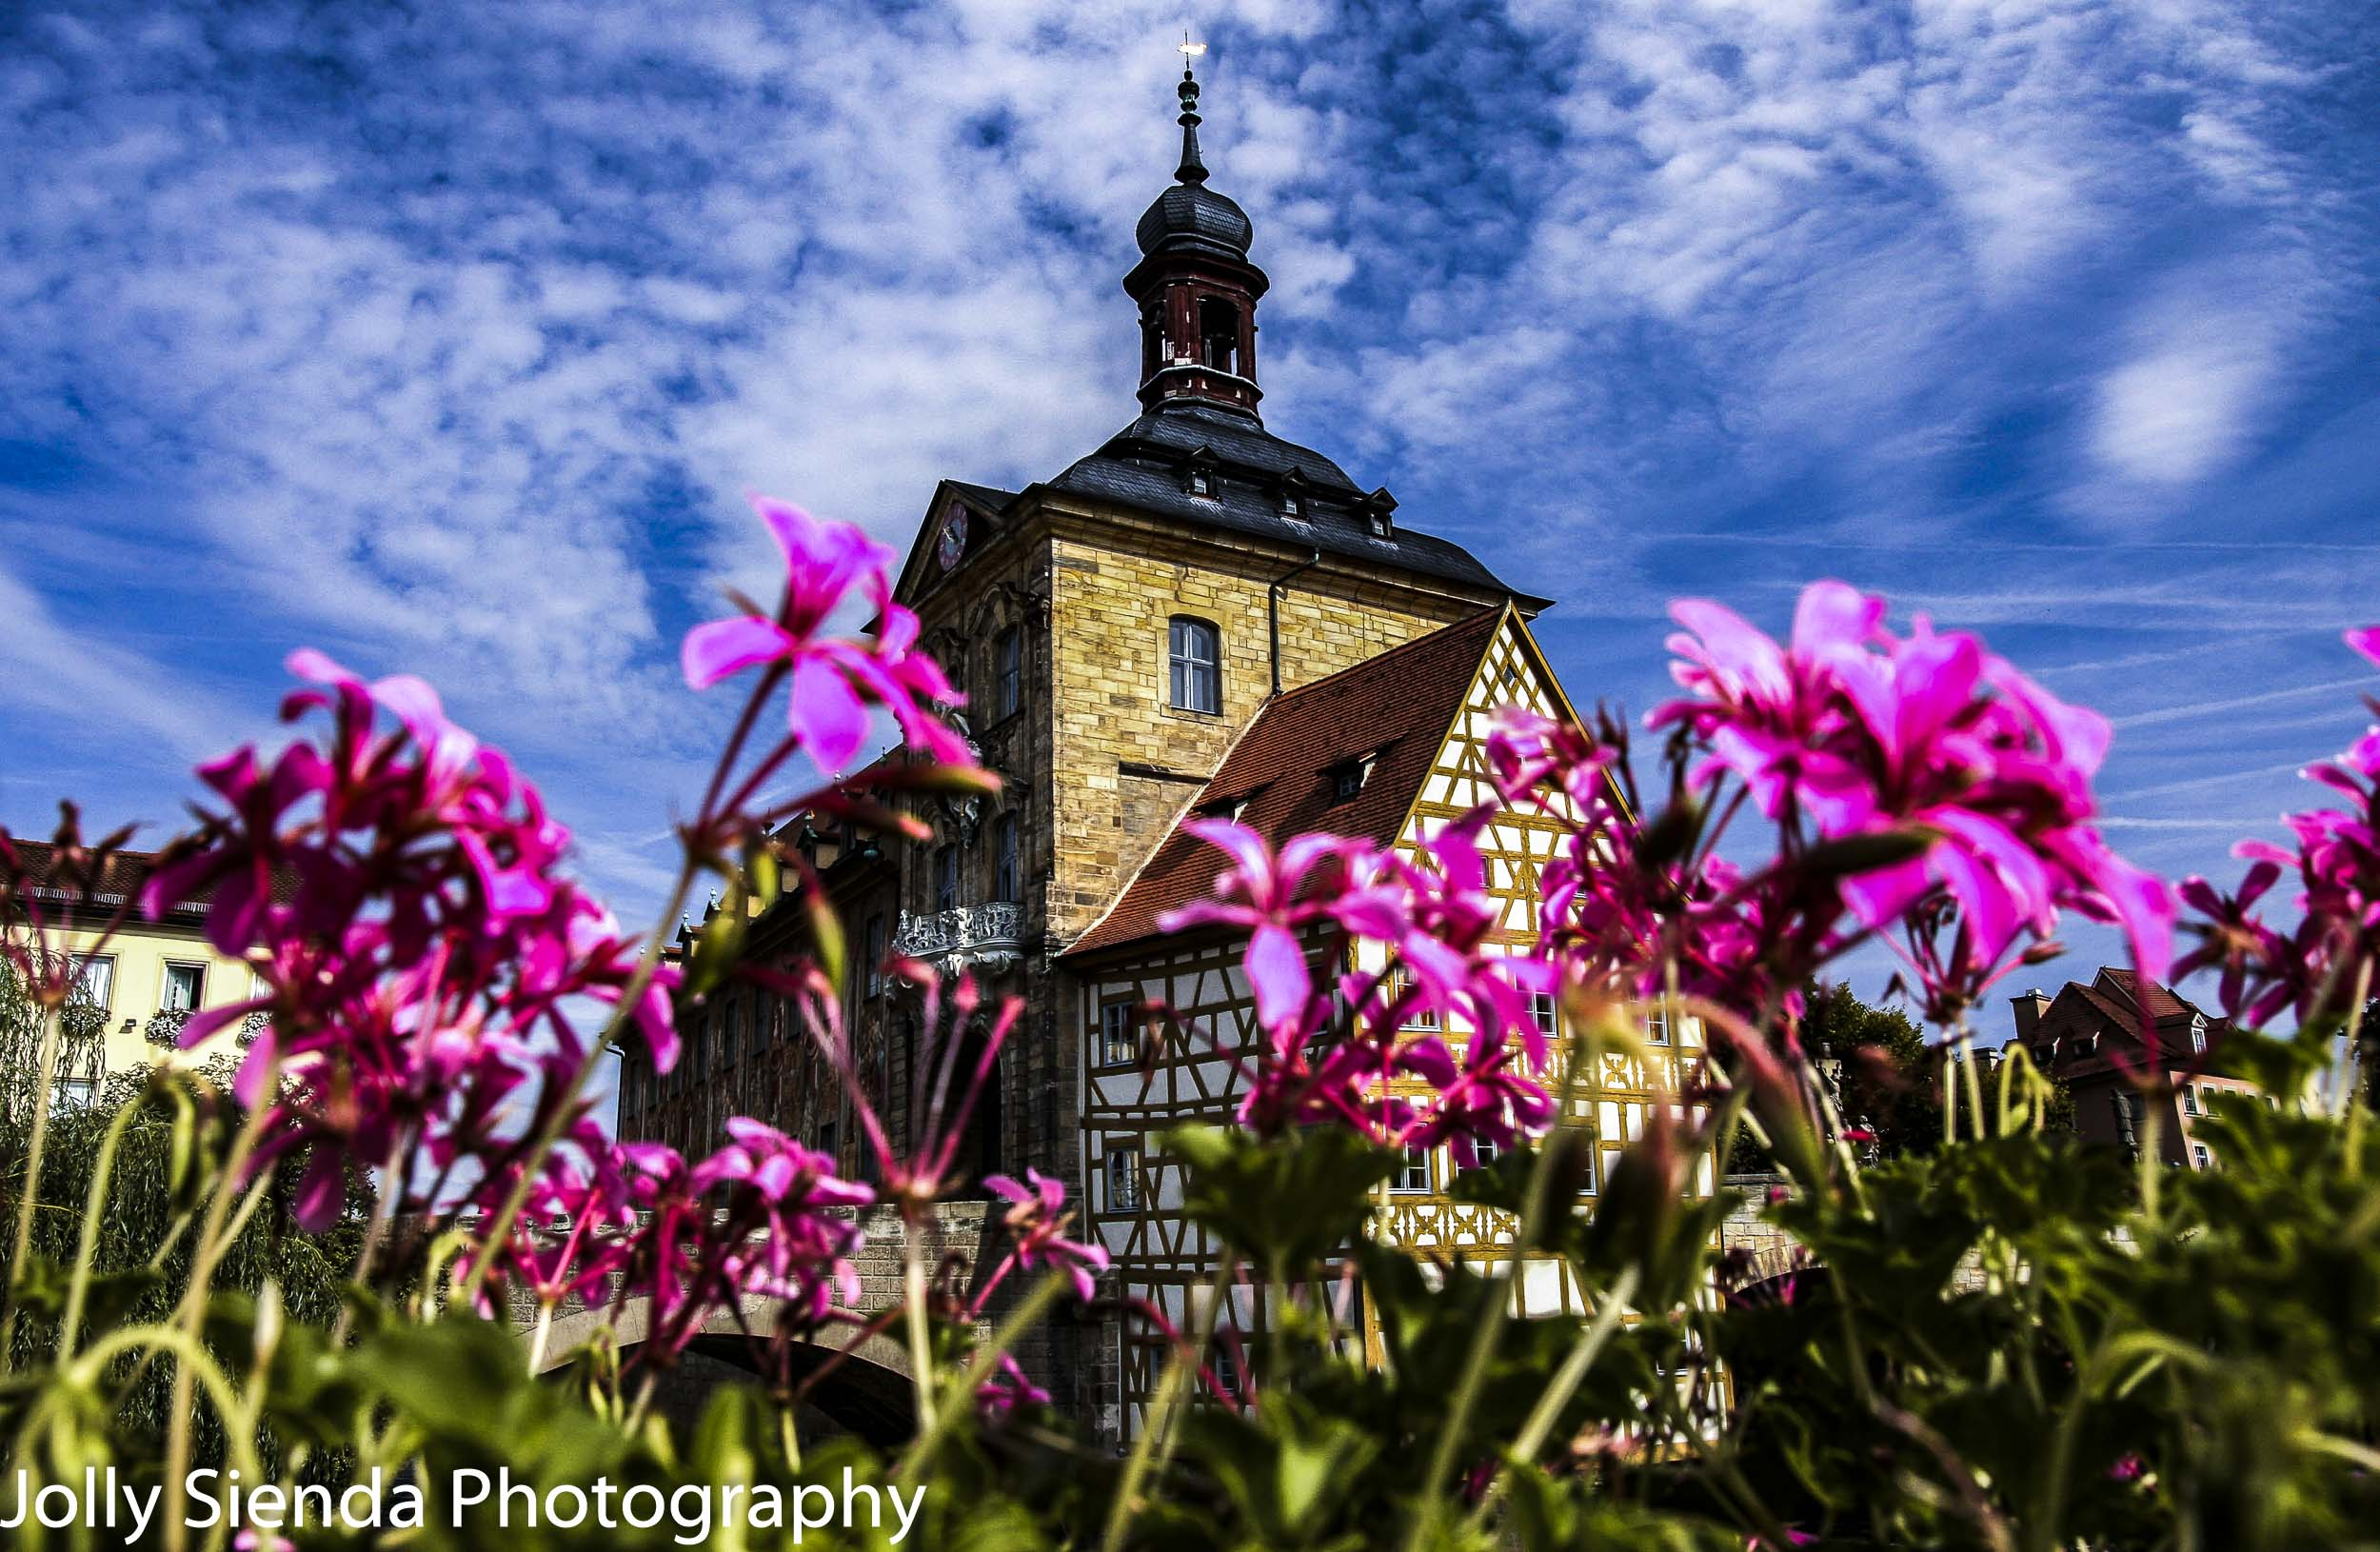 Bamberg's City Hall, Altes Rathaus, with pink flowers